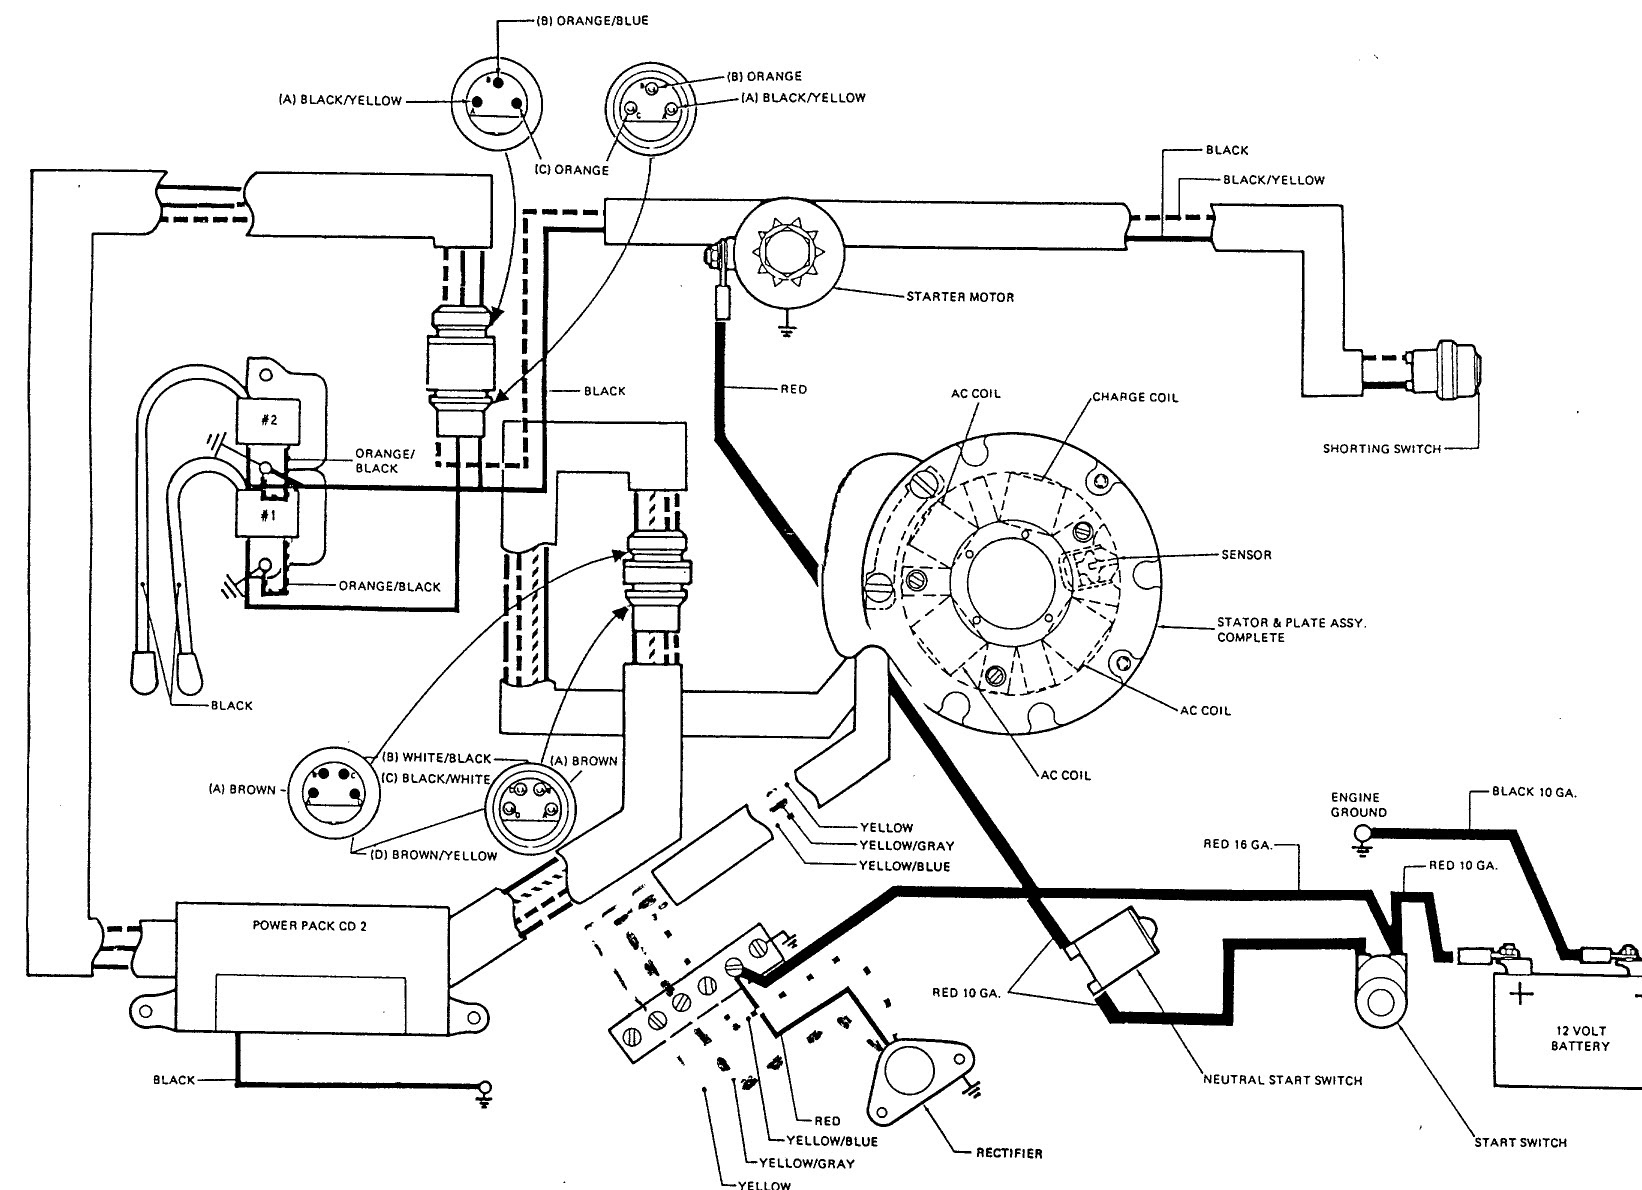 100 Hp Johnson Outboard Motor Wiring Diagram Mobile Home Intertherm Furnace Wiring Diagram Bege Wiring Diagram